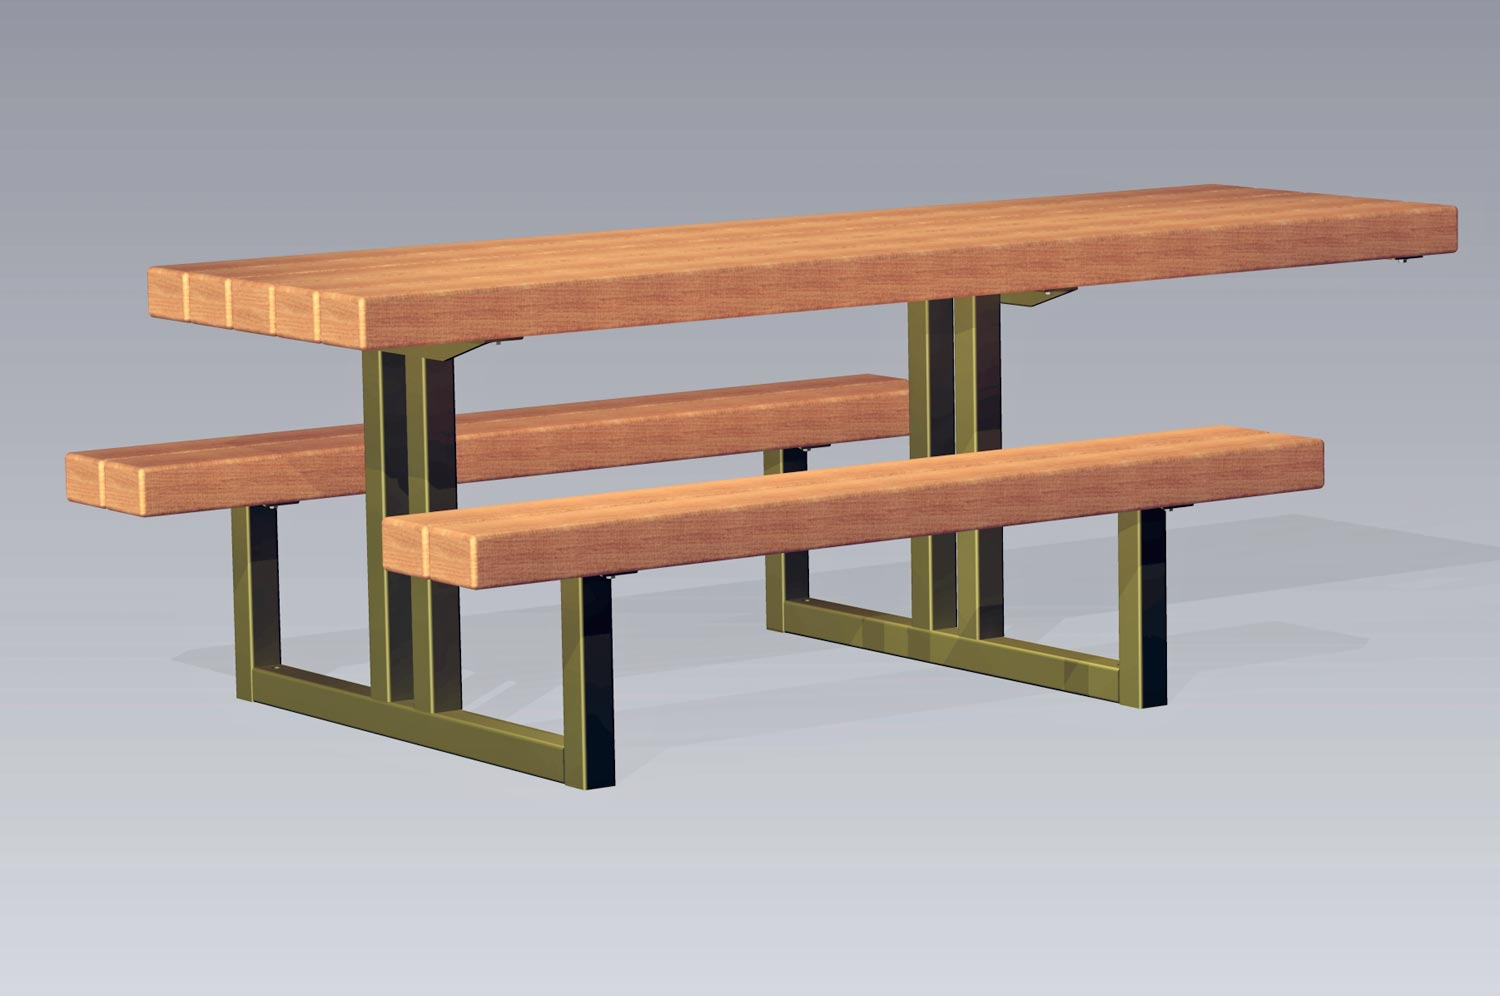 TimberForm Site Furnishings - Picnic table dwg